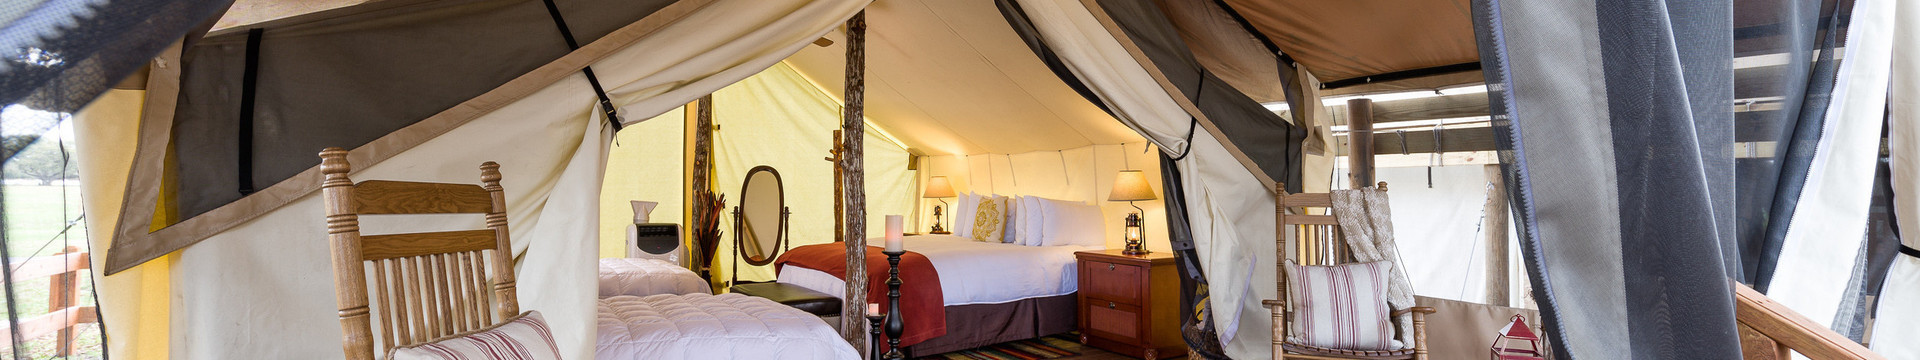 Glamping Florida near Orlando | Inside our Luxe Teepee